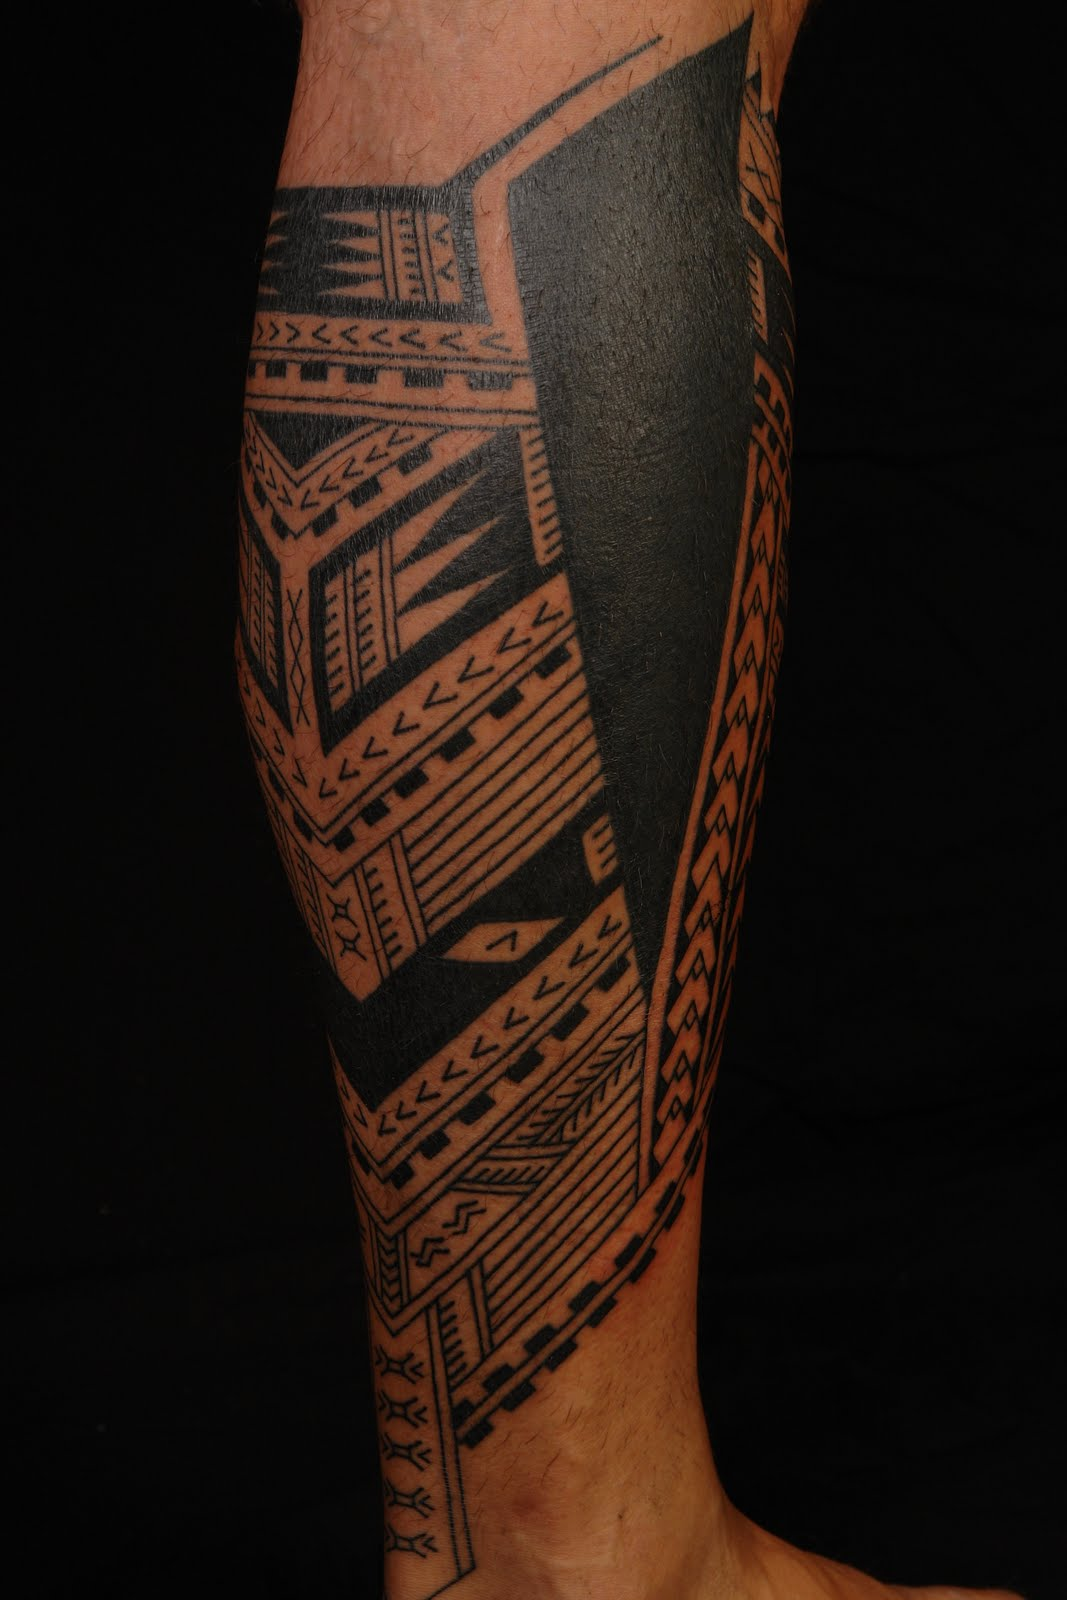 shane tattoos samoan polynesian calf tattoo. Black Bedroom Furniture Sets. Home Design Ideas